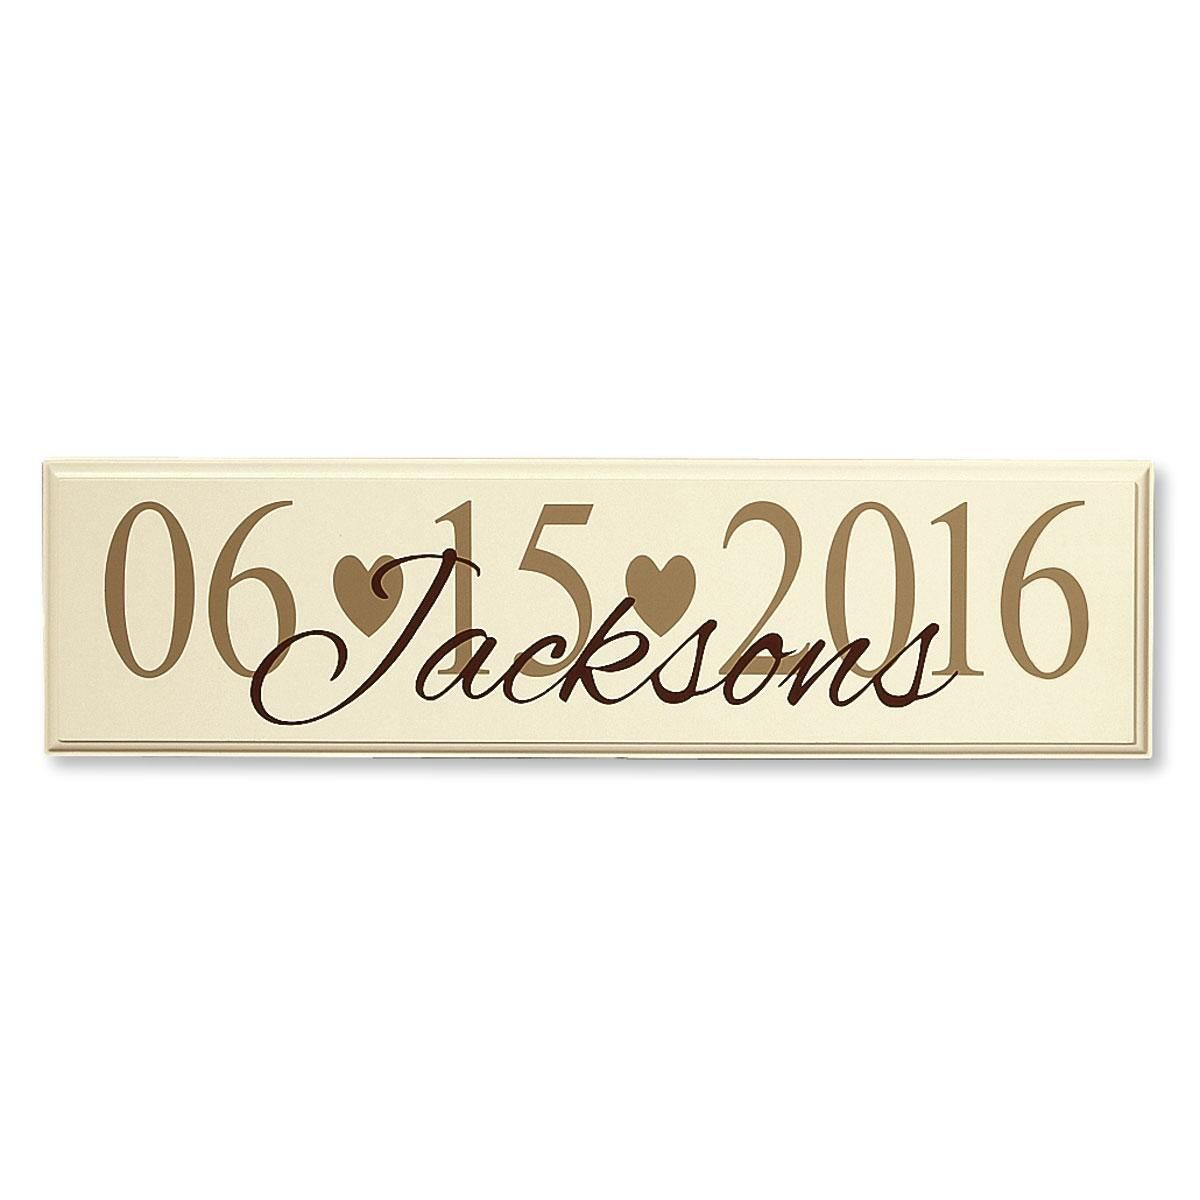 Wall Art With Wedding Date : Wedding date personalized wooden plaque colorful images